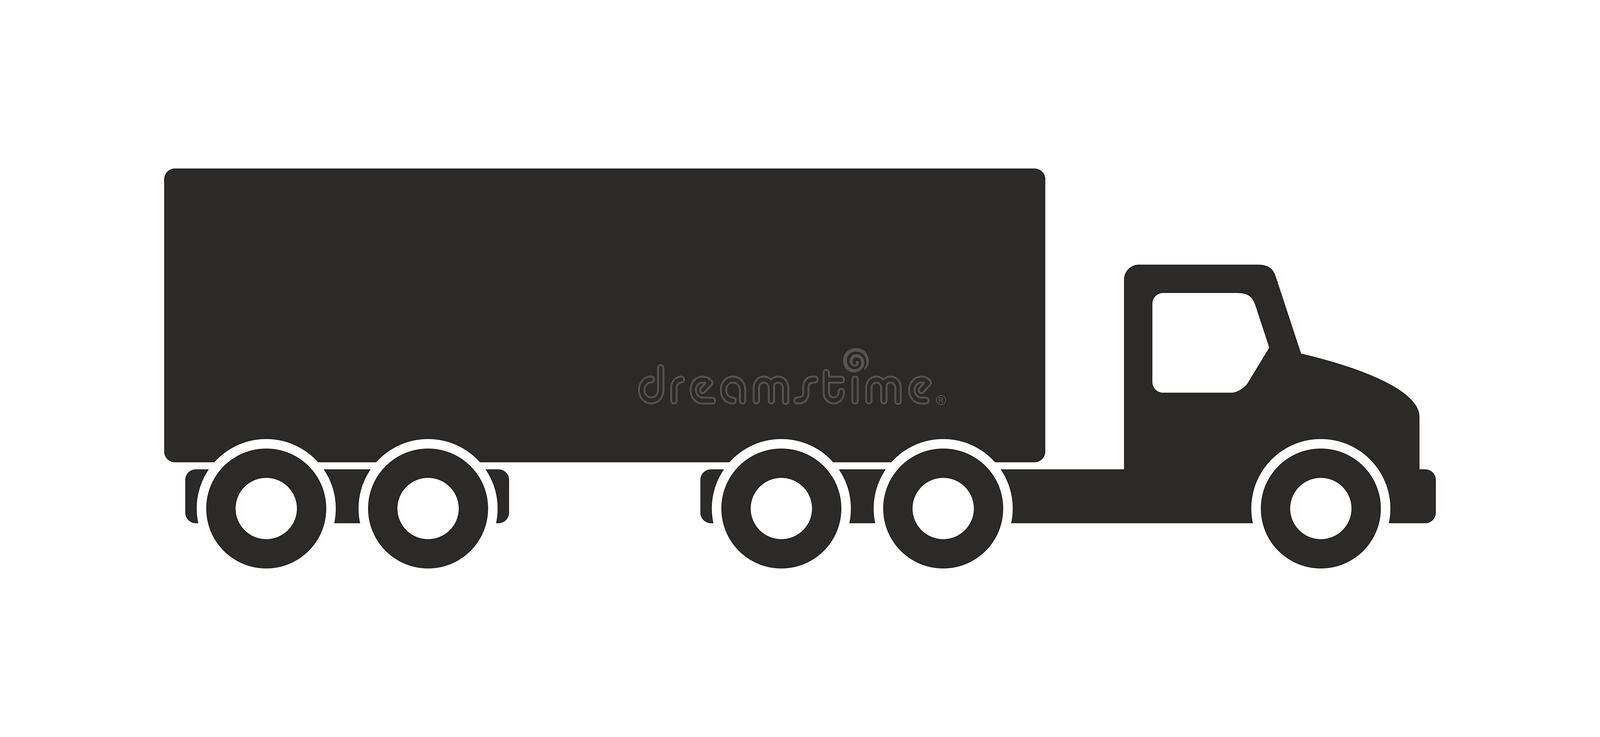 Truck icon, Monochrome style. Isolated on white background royalty free illustration